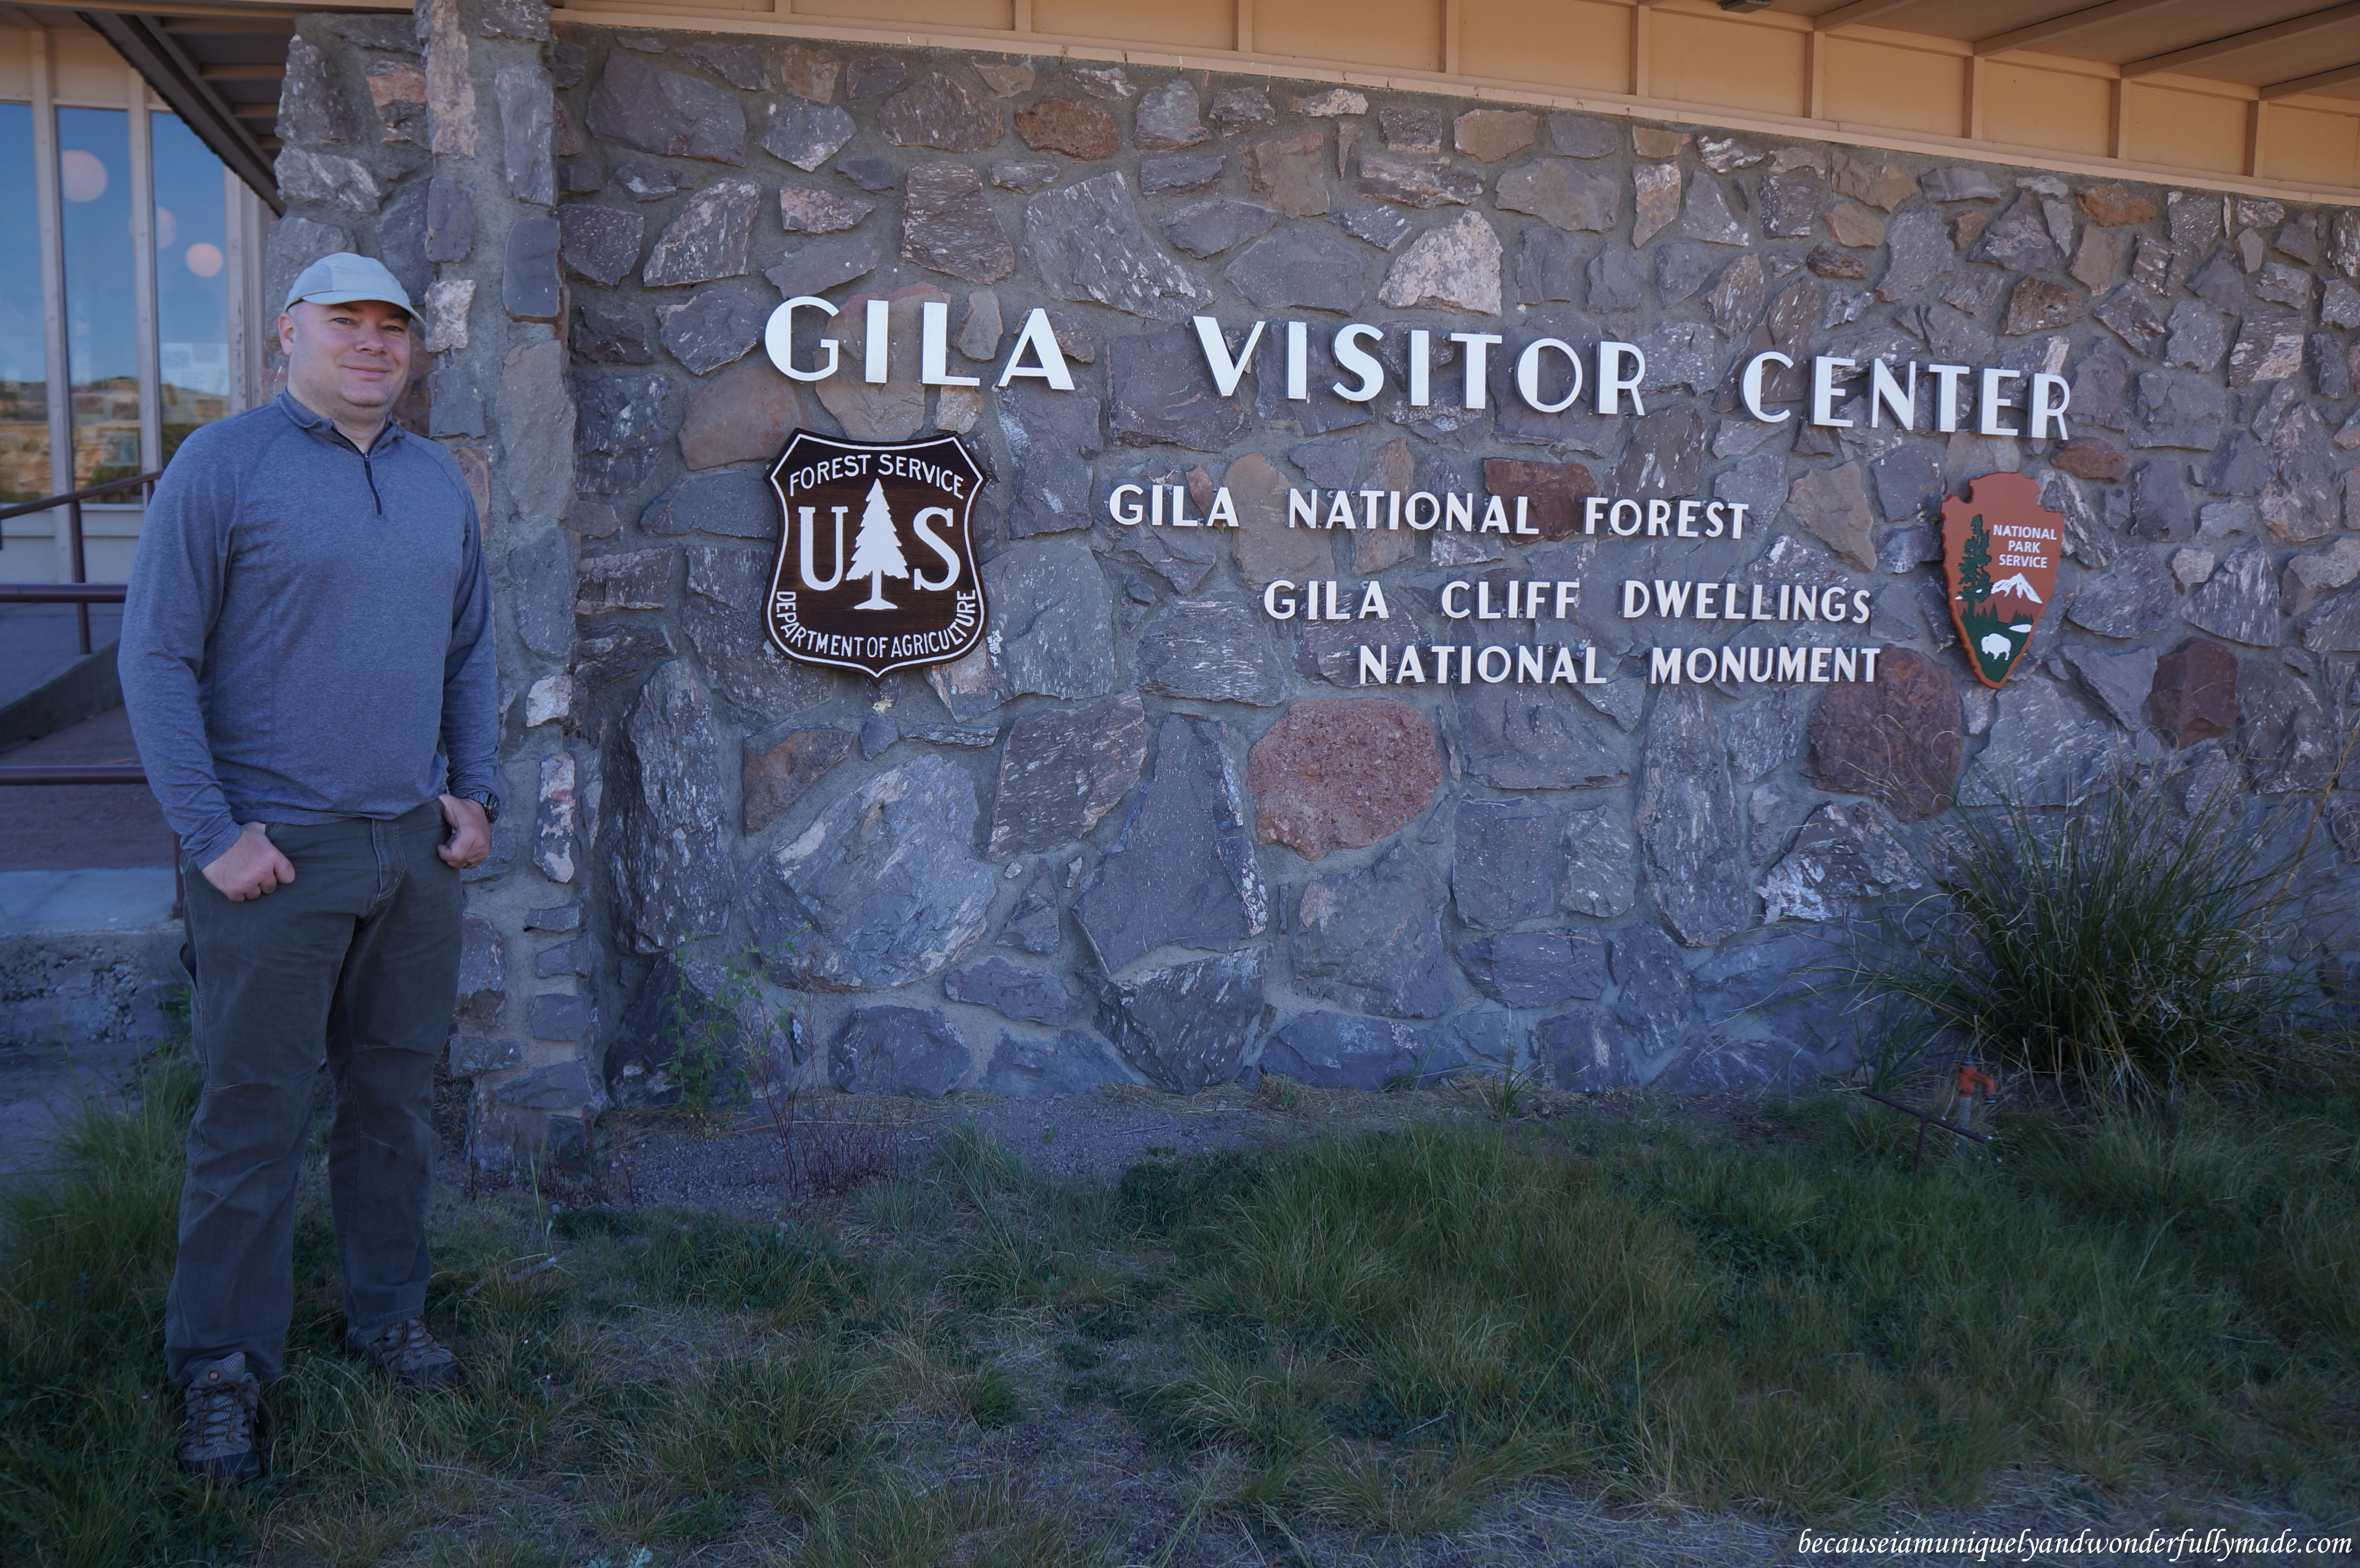 Inside Gila Visitor Center is a small museum celebrating the Mogollon culture.